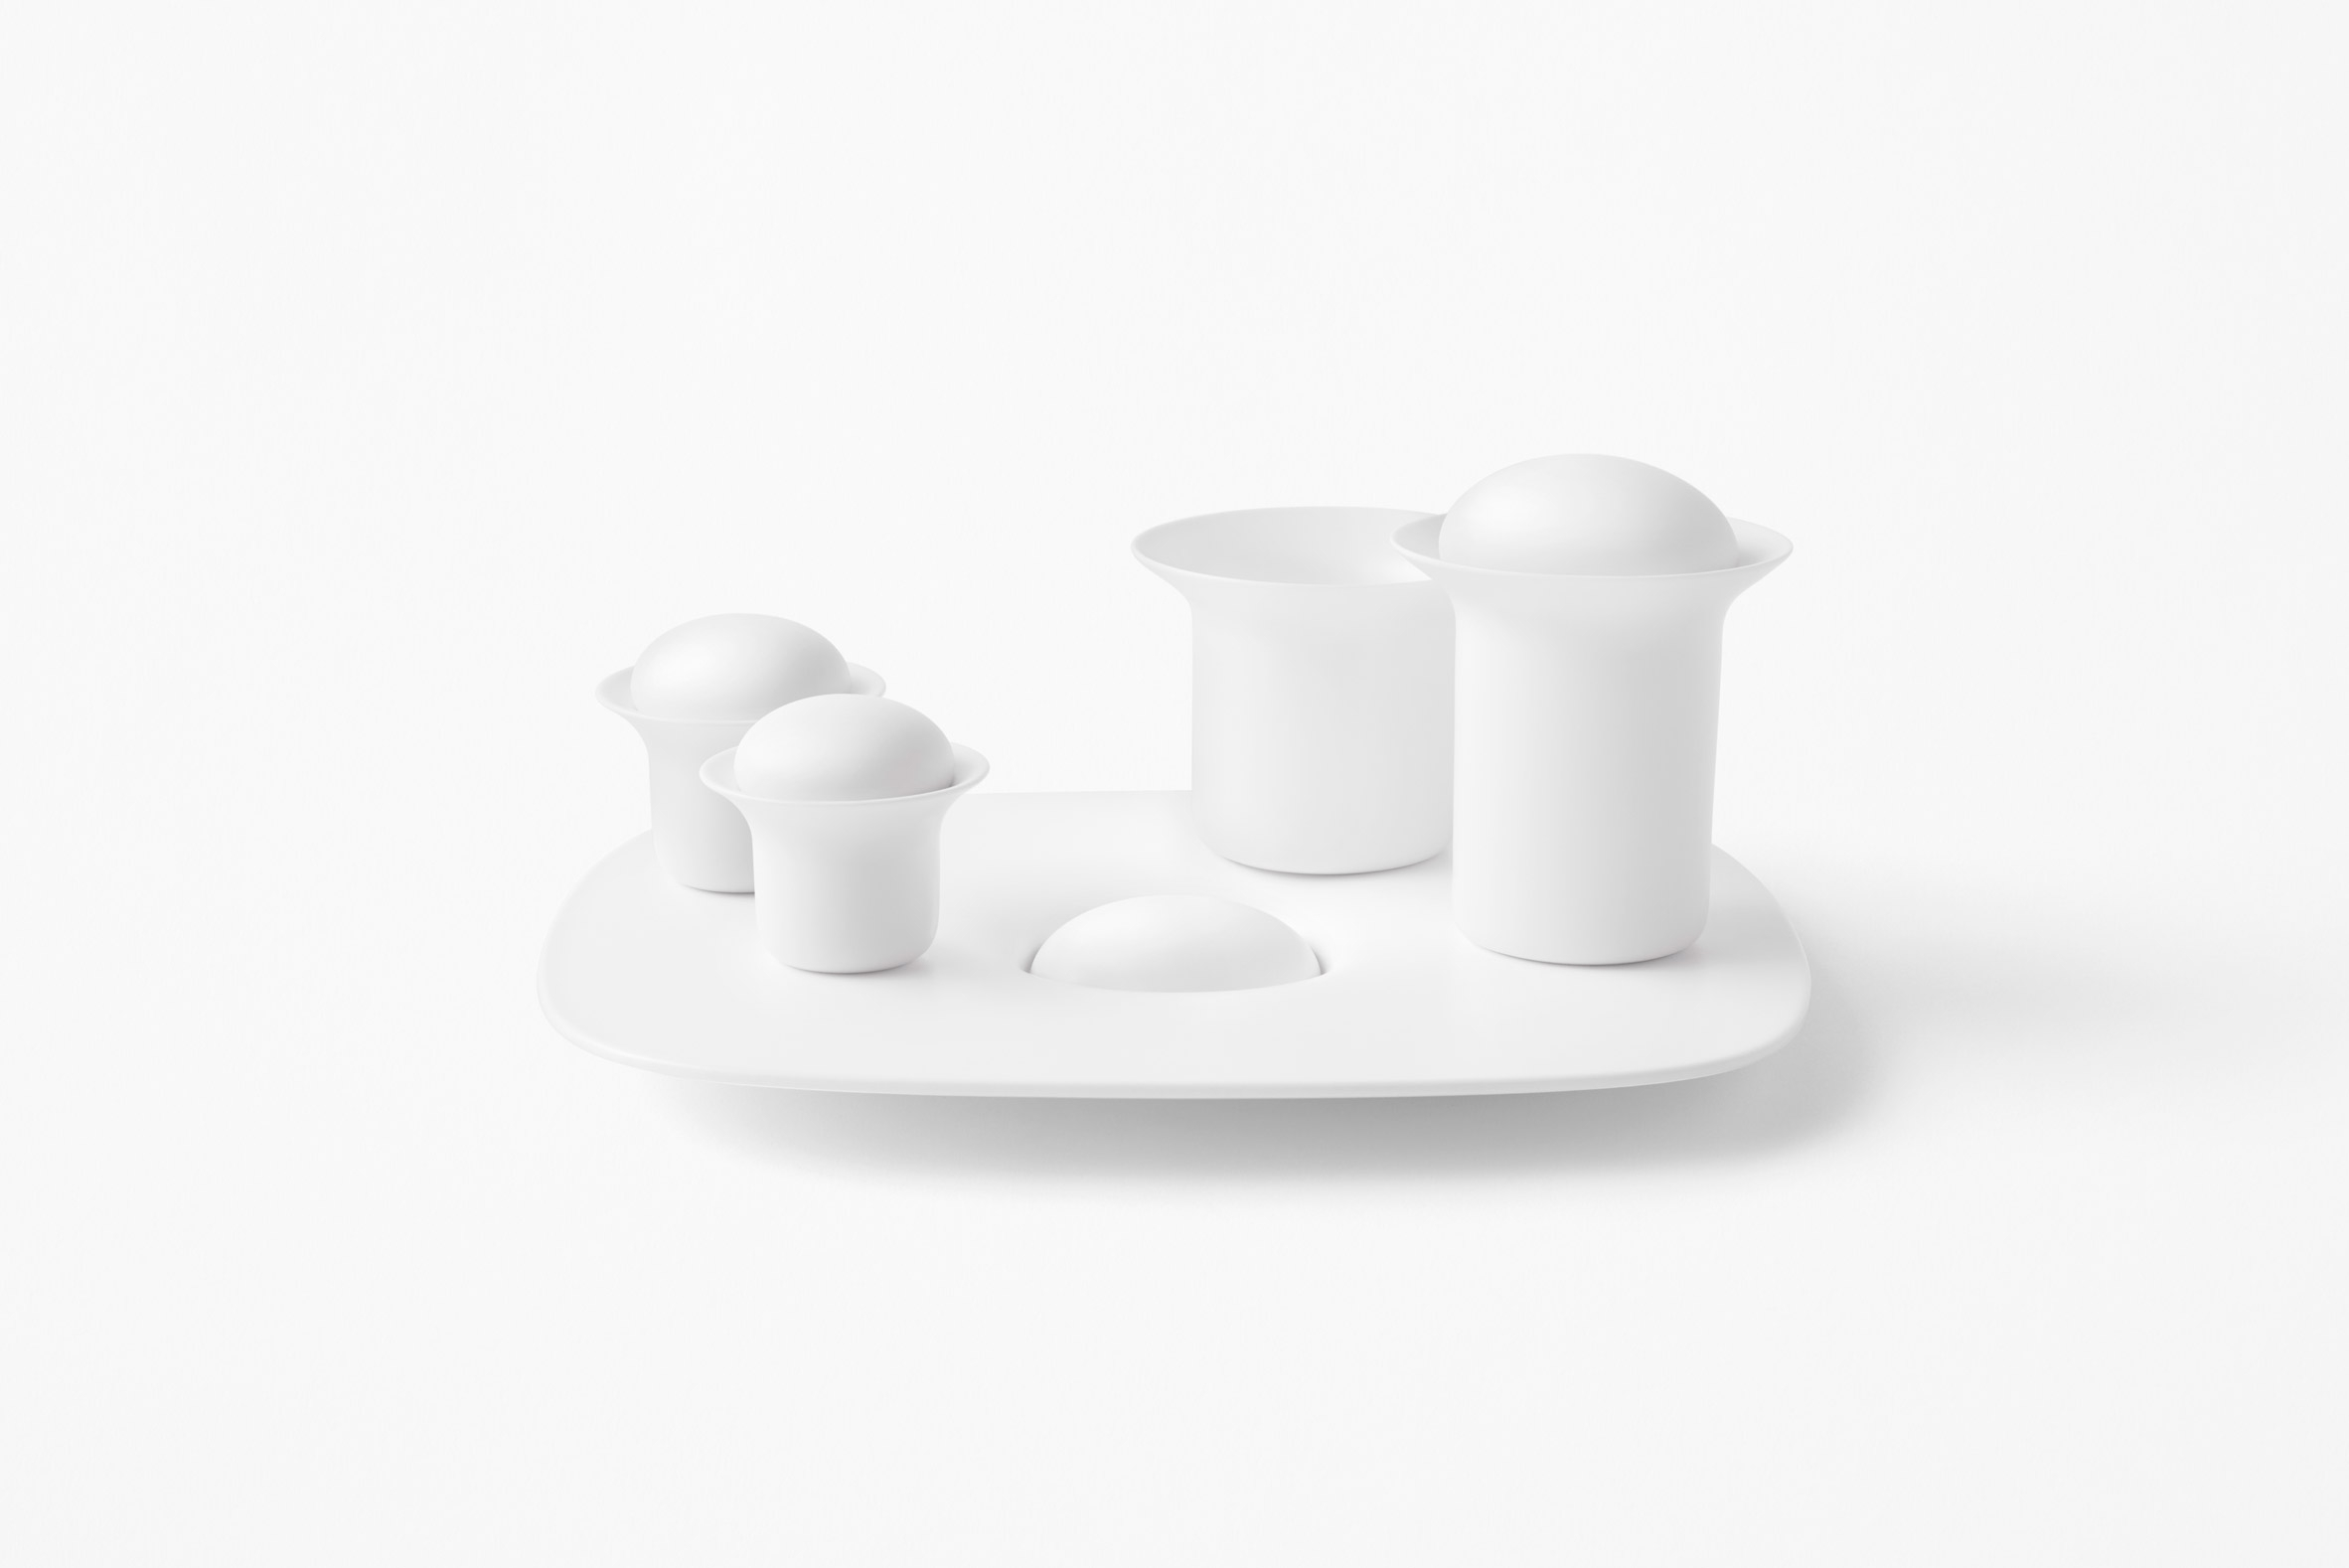 Stone collection Nendo - minimalist | ello